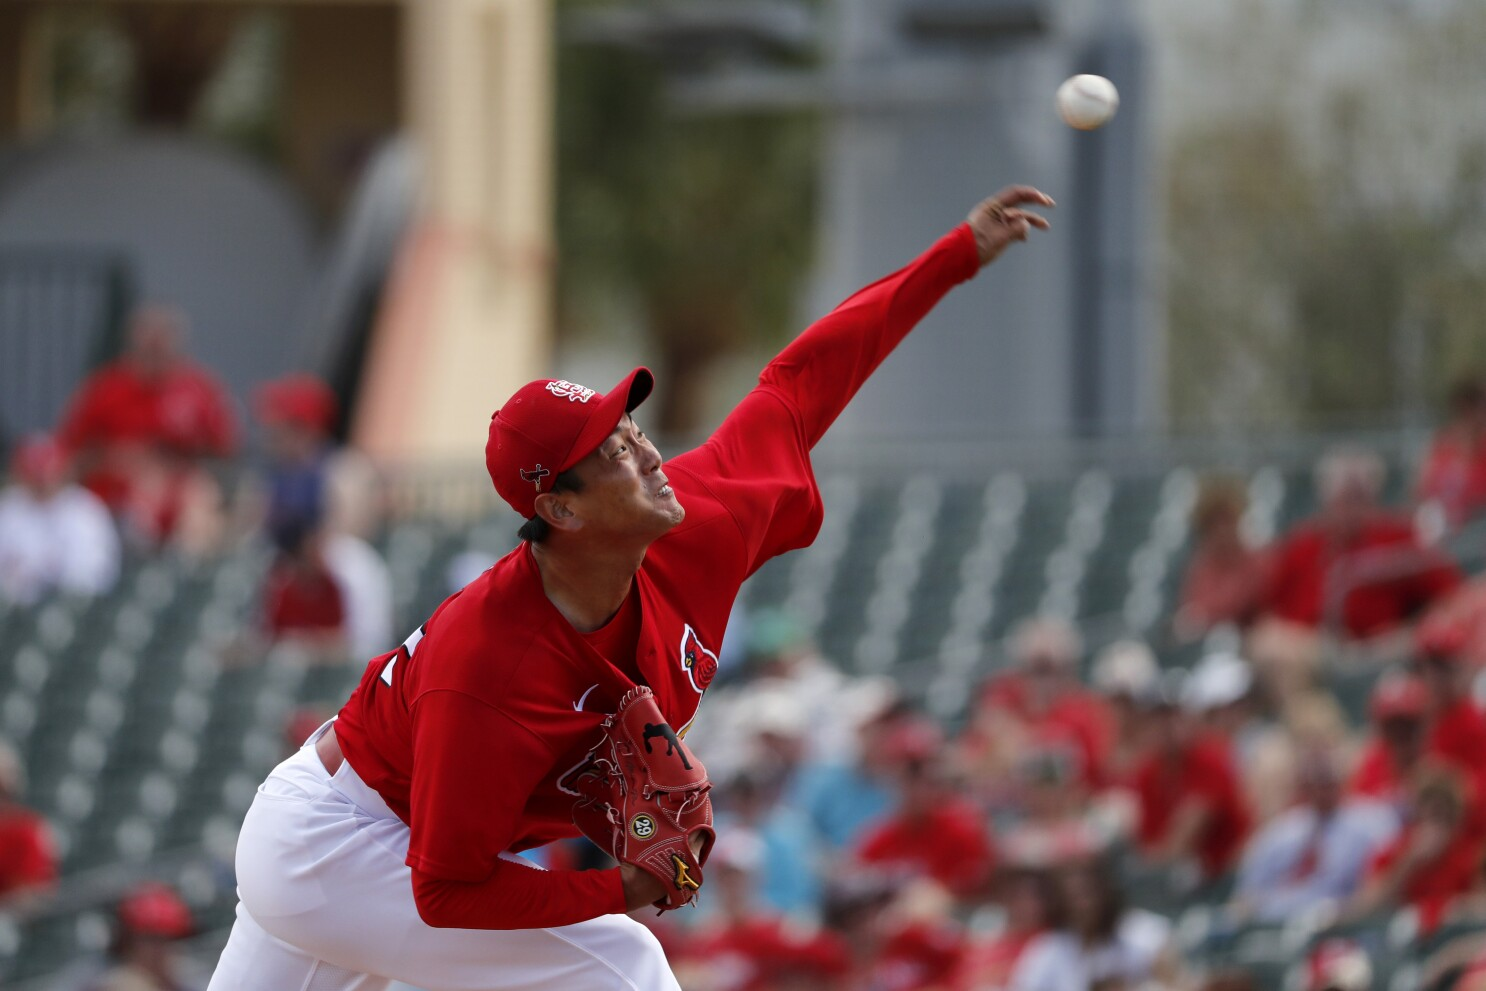 Kim Works Two Perfect Innings In Debut As Cardinals Starter The San Diego Union Tribune